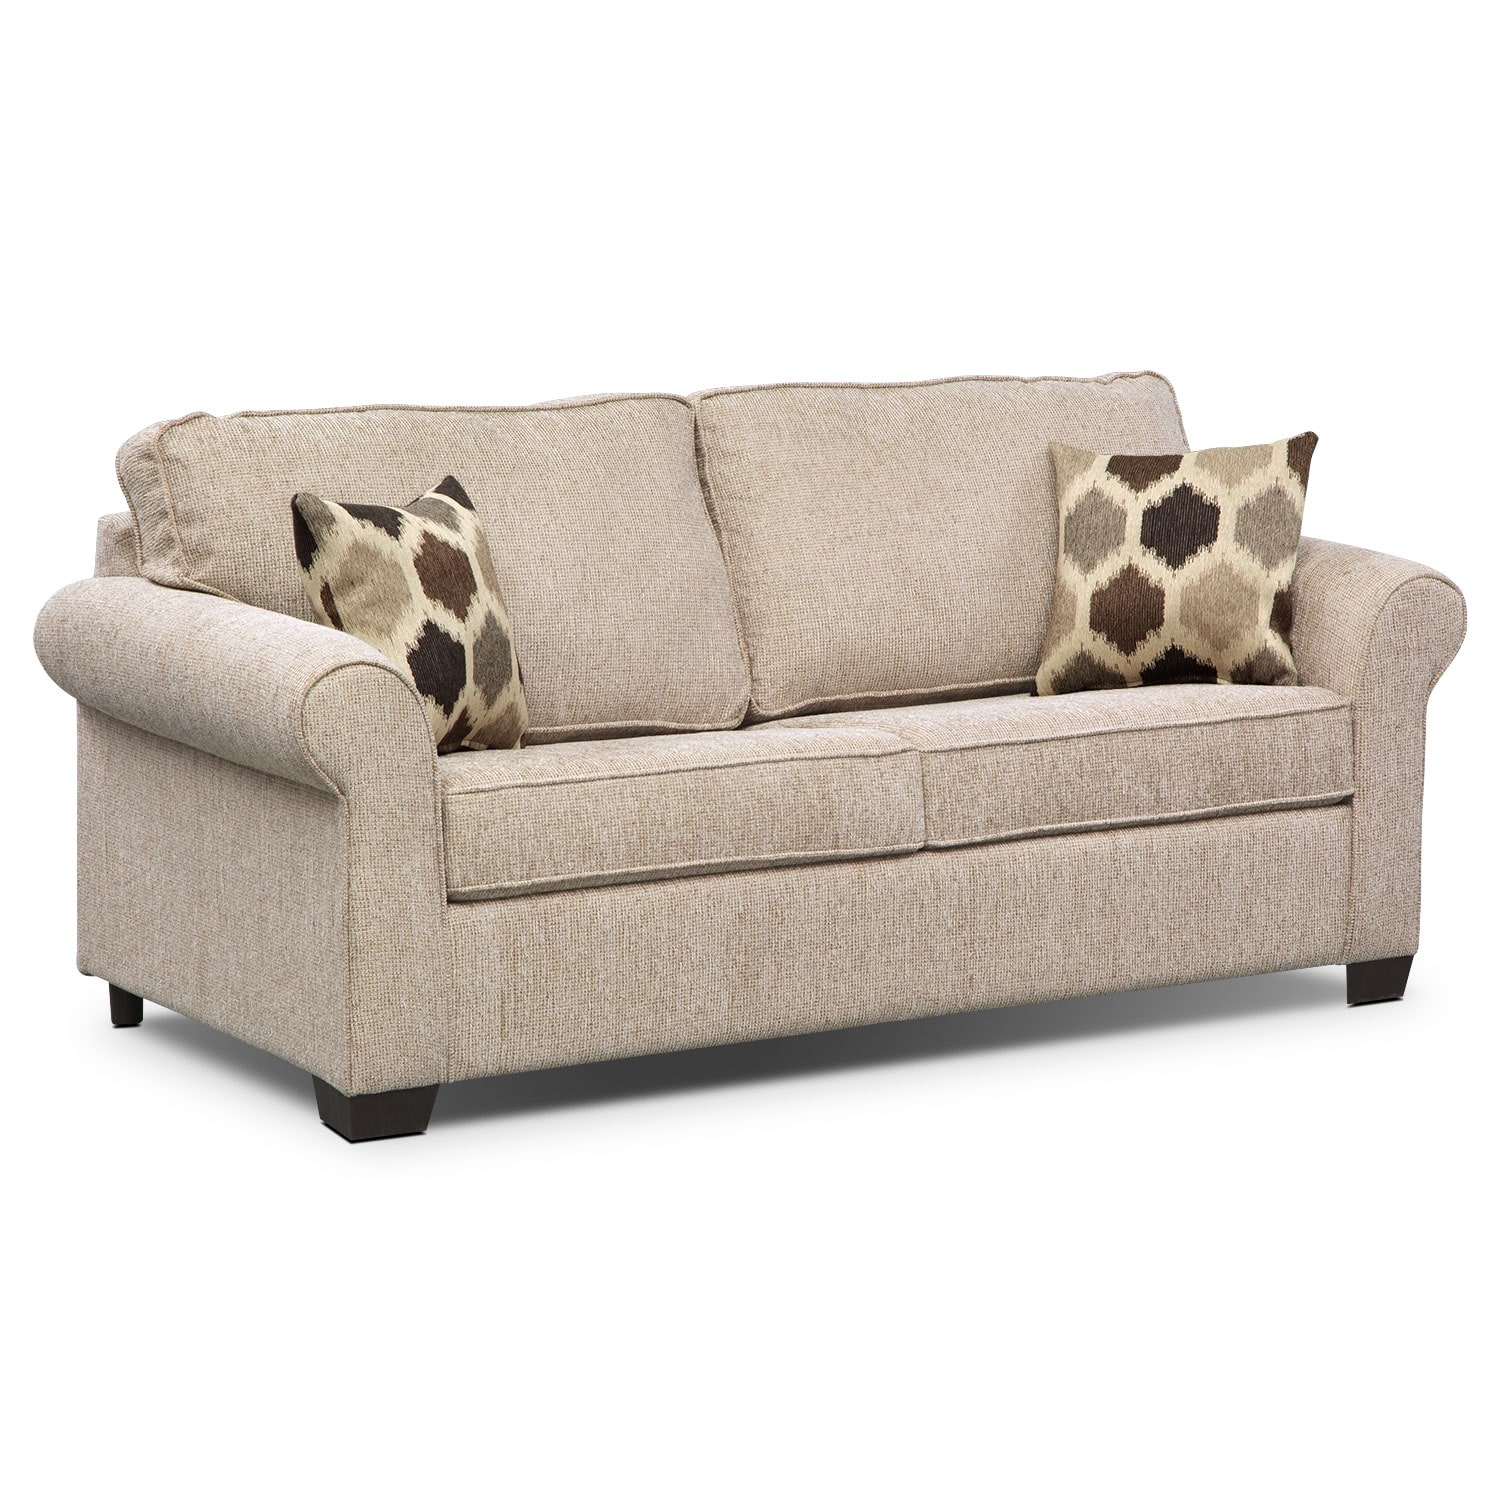 Fletcher Full Memory Foam Sleeper Sofa American Signature Furniture